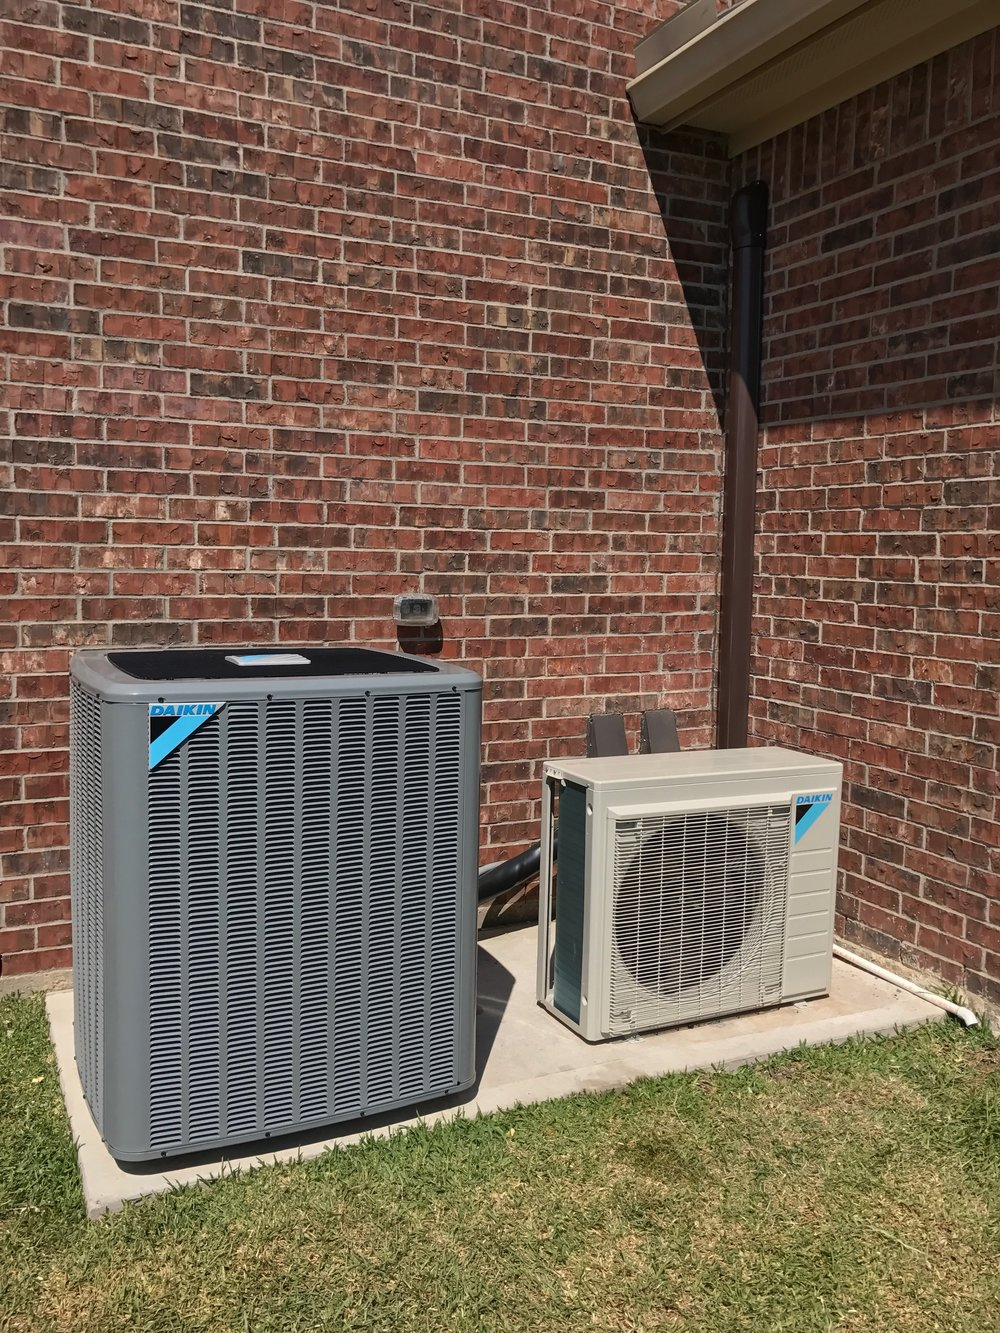 carrier 2 5 ton 16 seer. here we have two new 16 seer single speed carrier air conditioning and heating systems which were replaced with one daikin dx20vc 5 ton variable 2 seer g